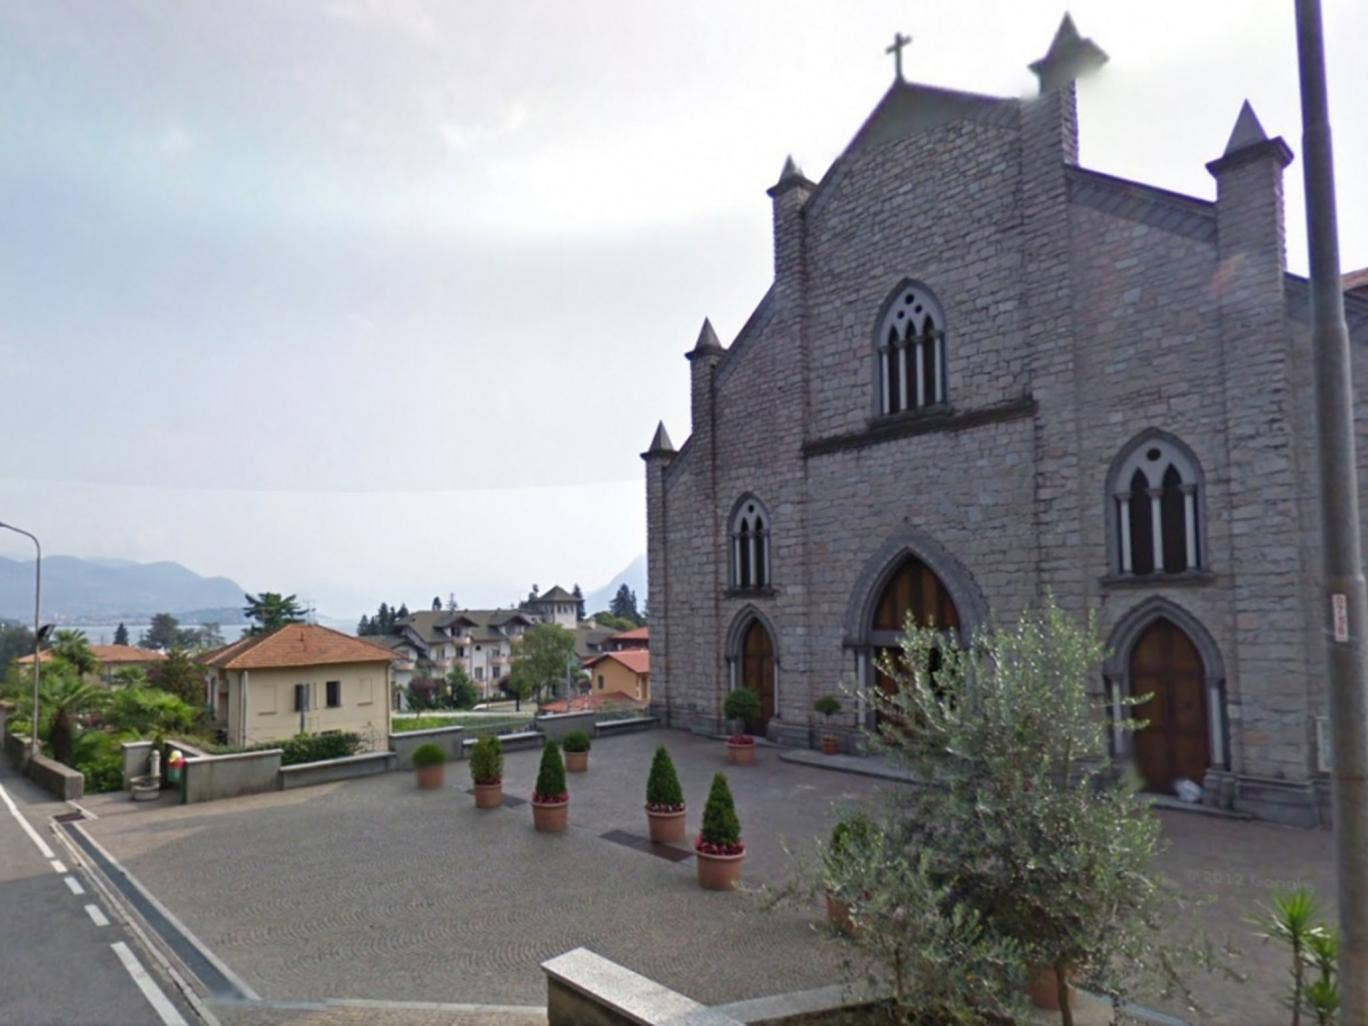 The Church where Father Cavaletti worked before being arrested